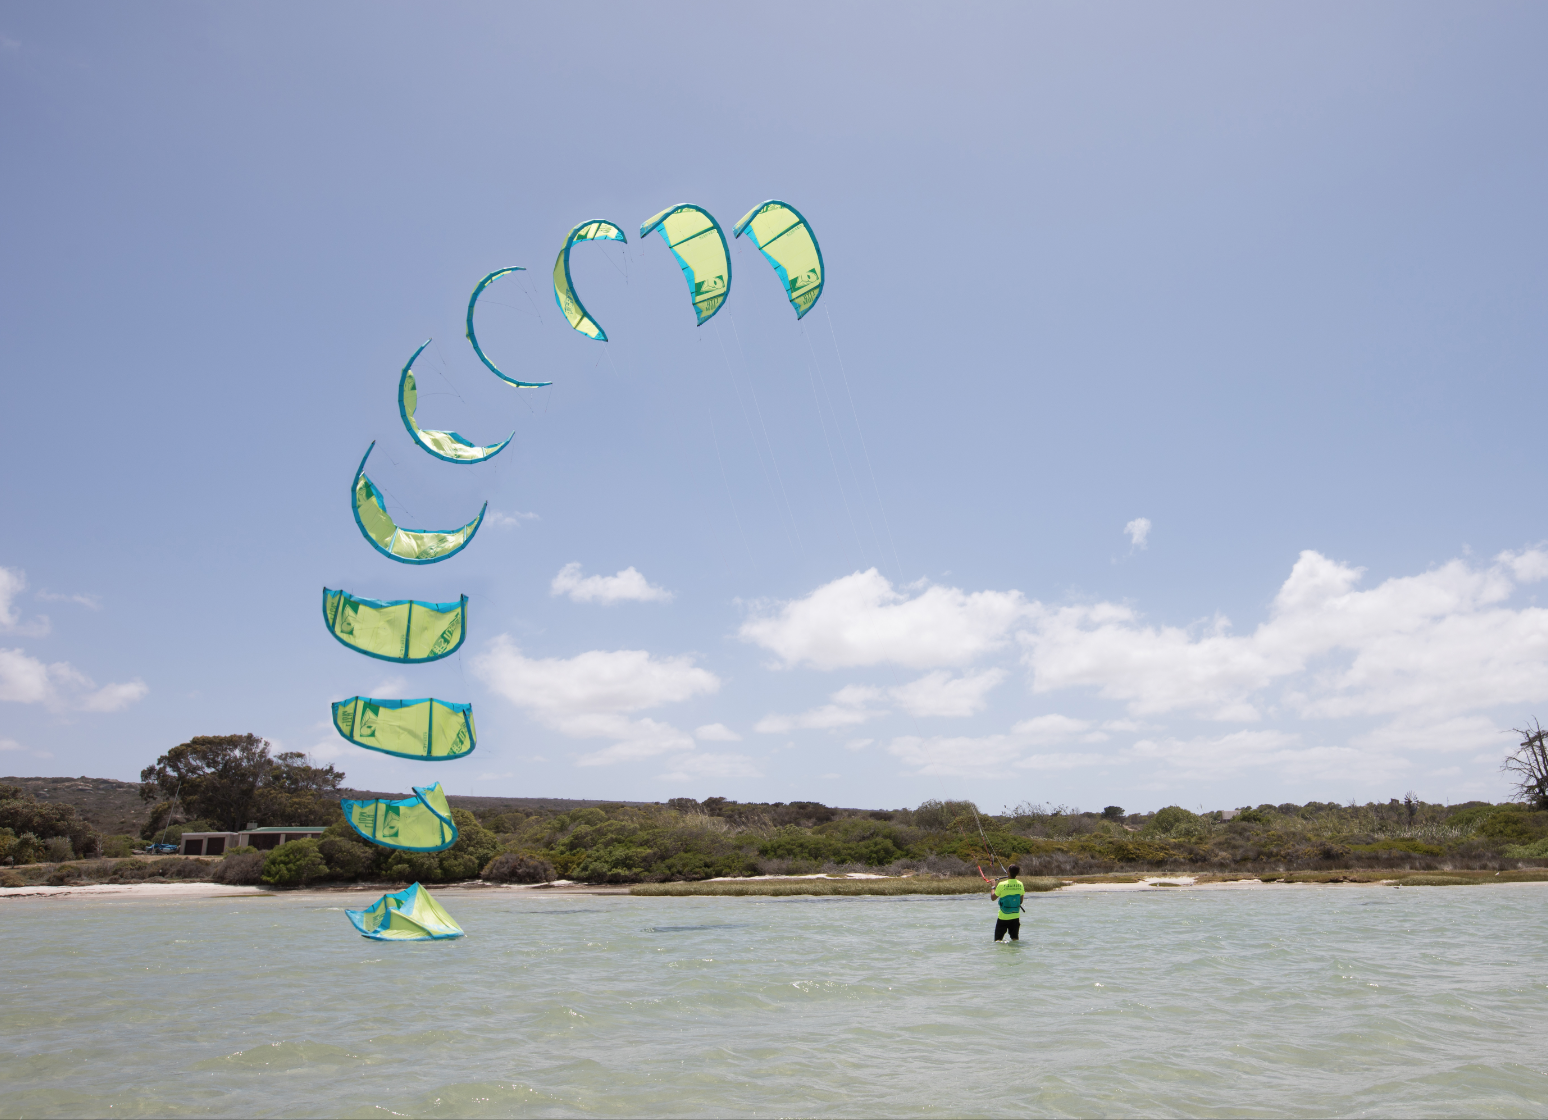 kite-control-bar-3-step-safety-thekitespot.com-single-line-flag-out-kitesurfing-safety